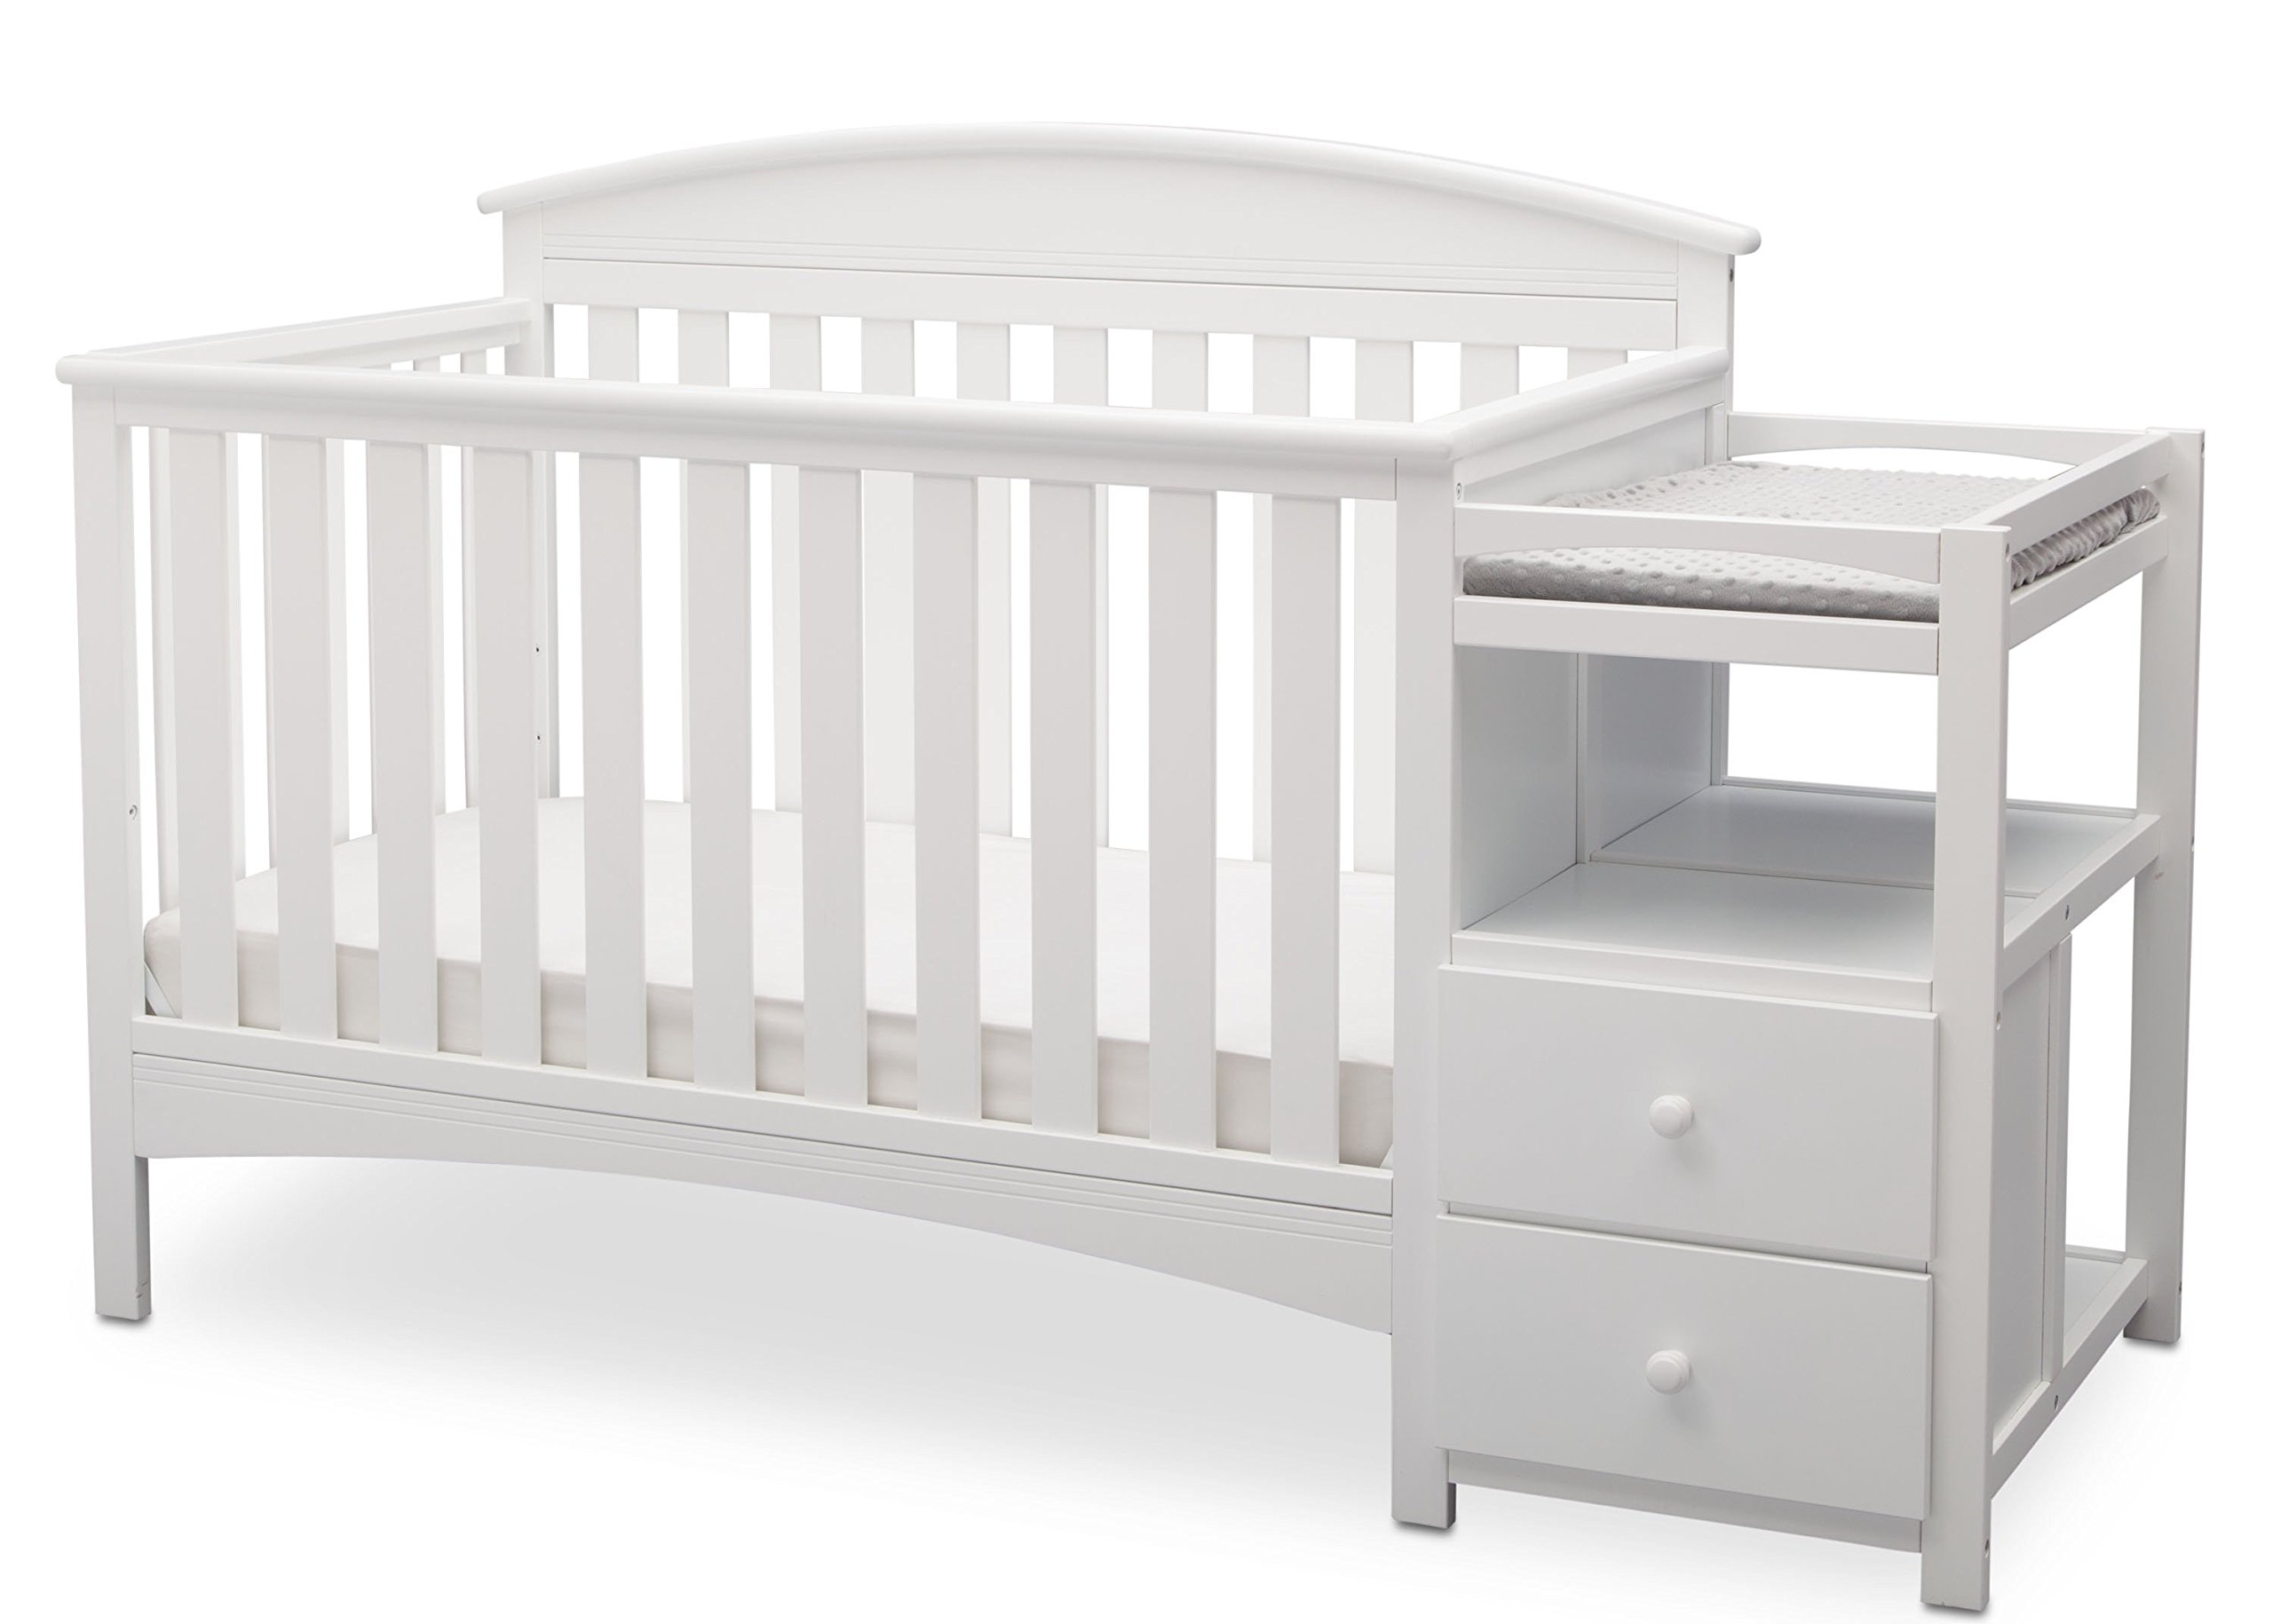 to for l online round new best sale buying crib cribs guide baby the complete cheap